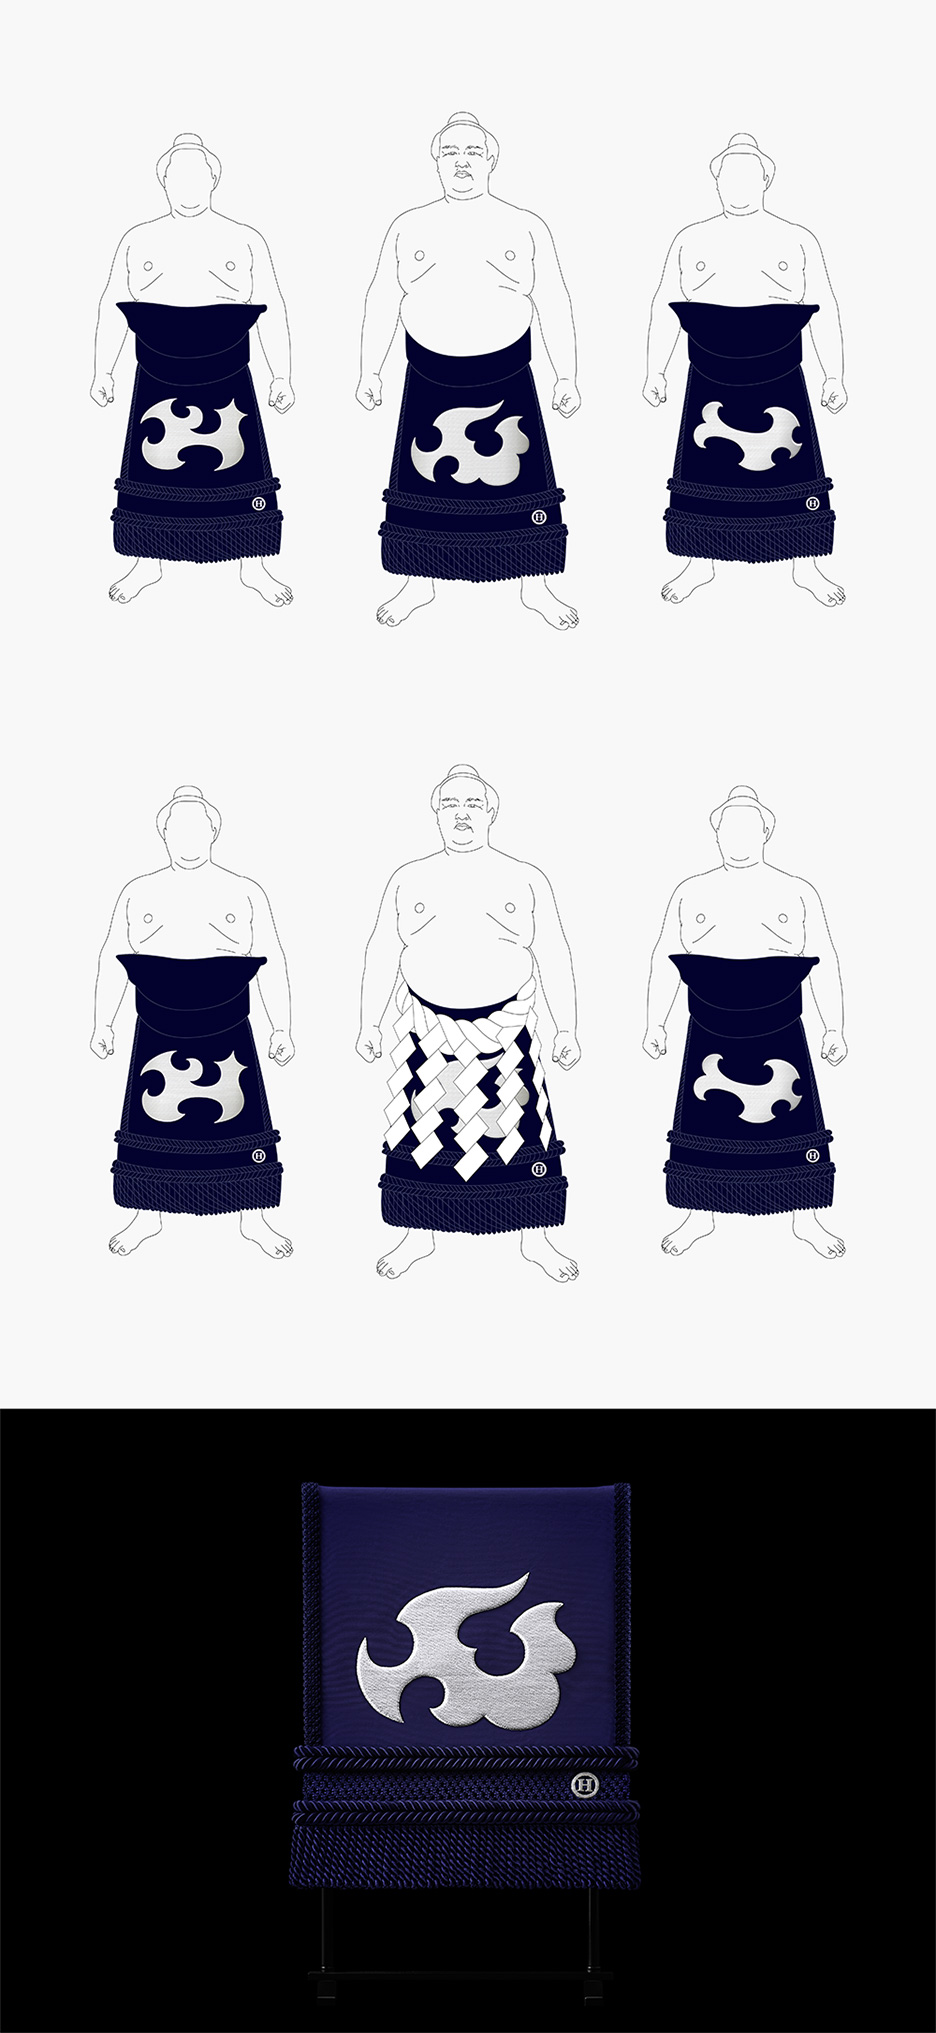 We designed the kesho-mawashi uniforms of yokozuna (highest grade) sumo wrestlers.